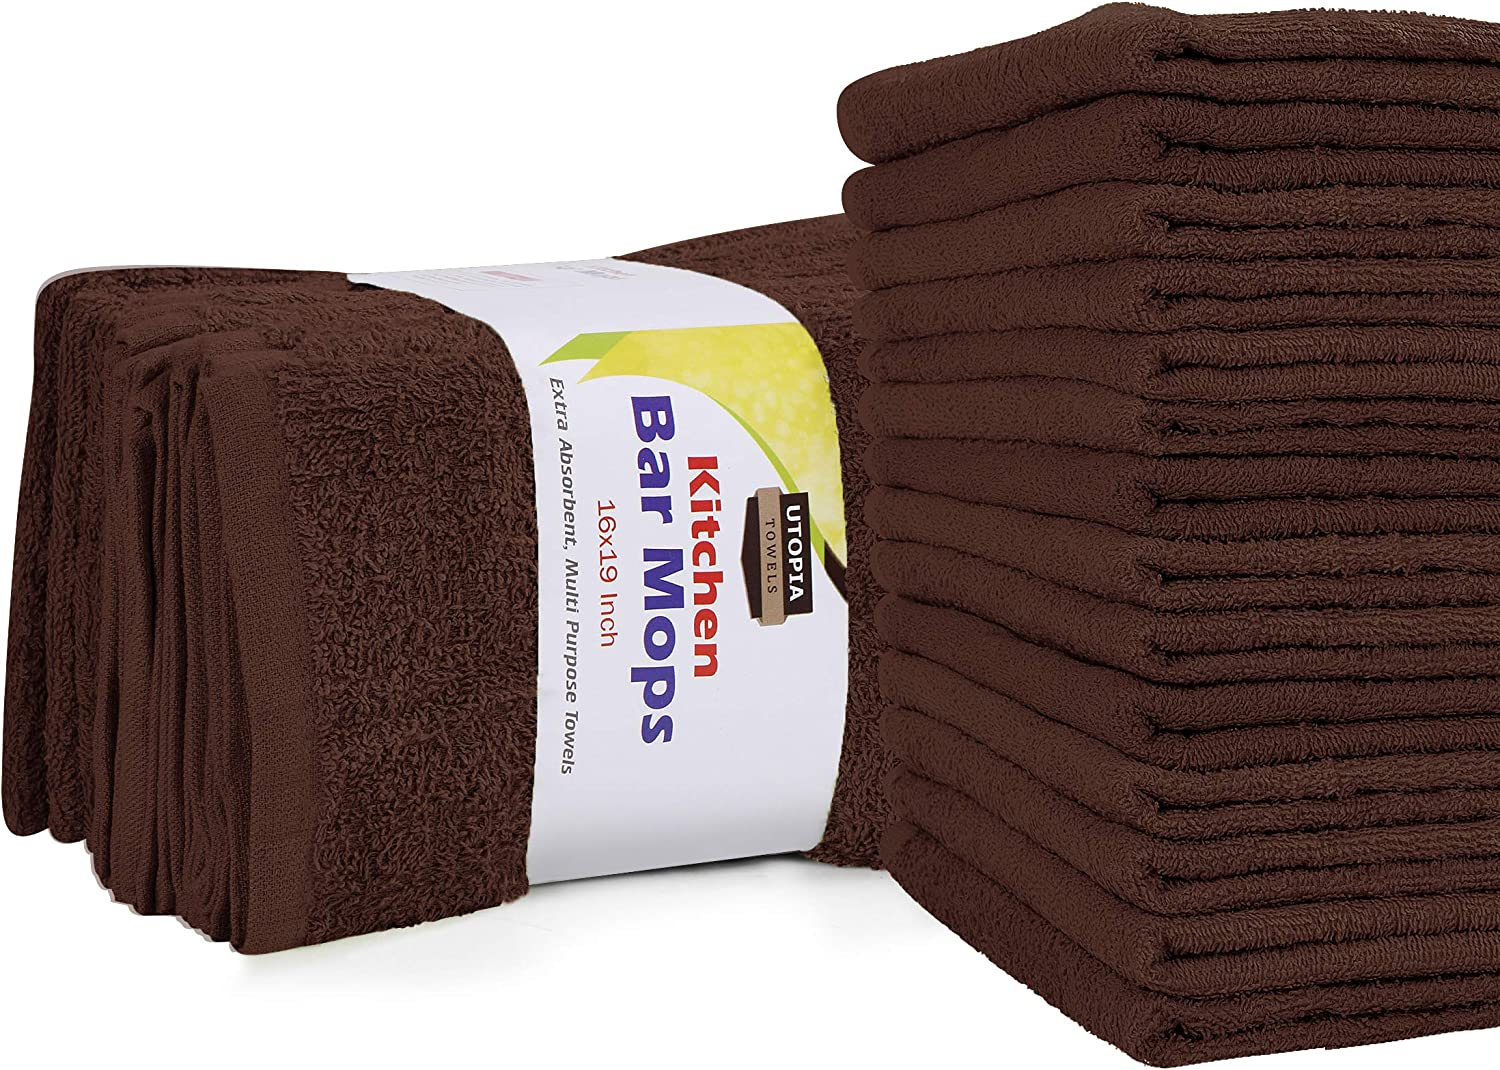 Utopia Towels Kitchen Bar Mops Towels, Pack of 12 Towels - 16 x 19 Inches, 100% Cotton Super Absorbent Brown Bar Towels, Multi-Purpose Cleaning Towels for Home and Kitchen Bars